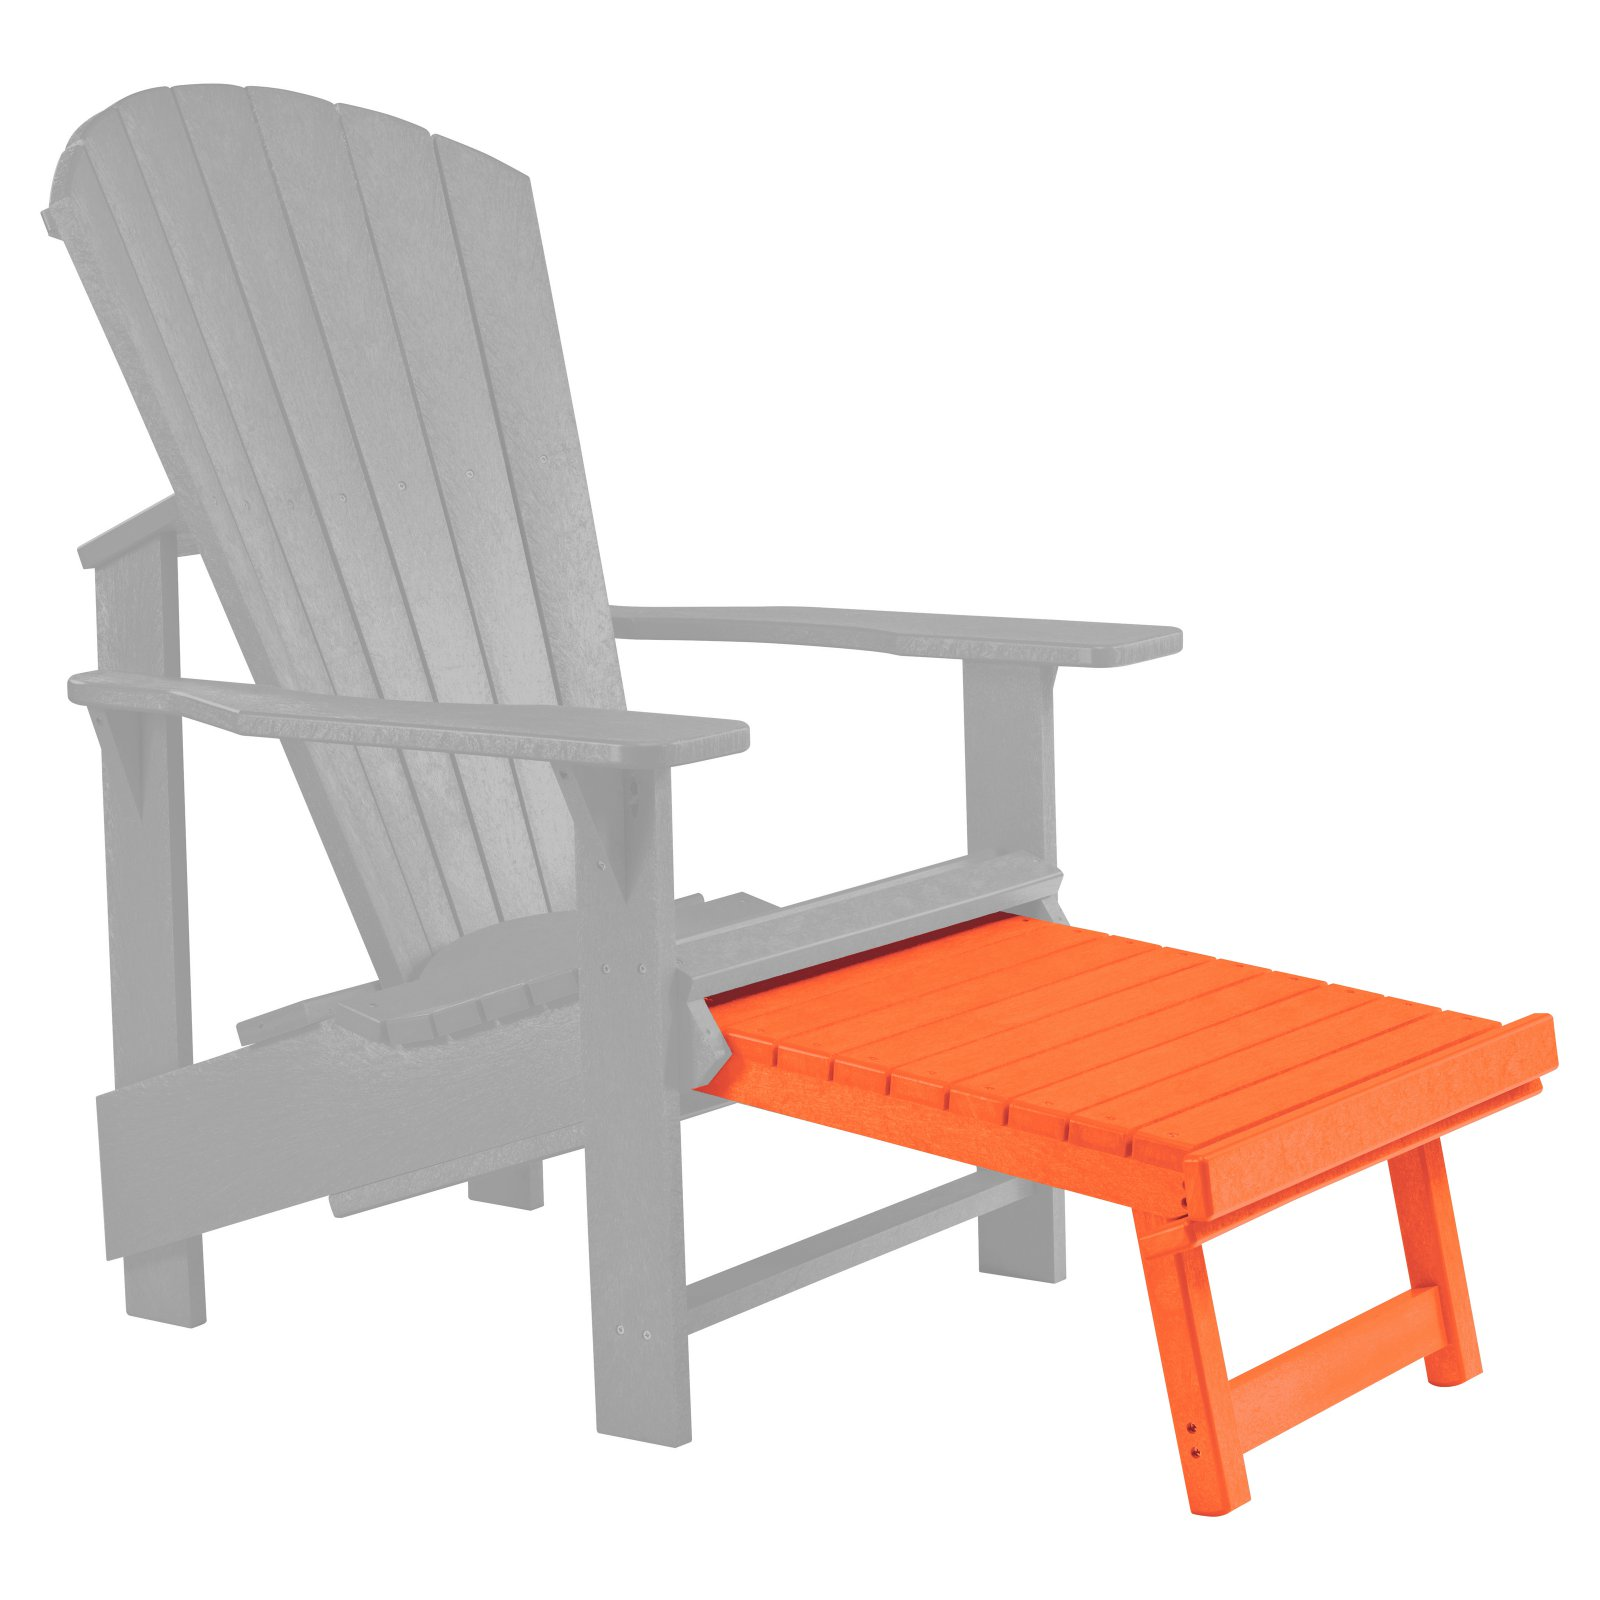 C.R. Plastic Generations Upright Adirondack Chair Pull Out Footstool    Walmart.com